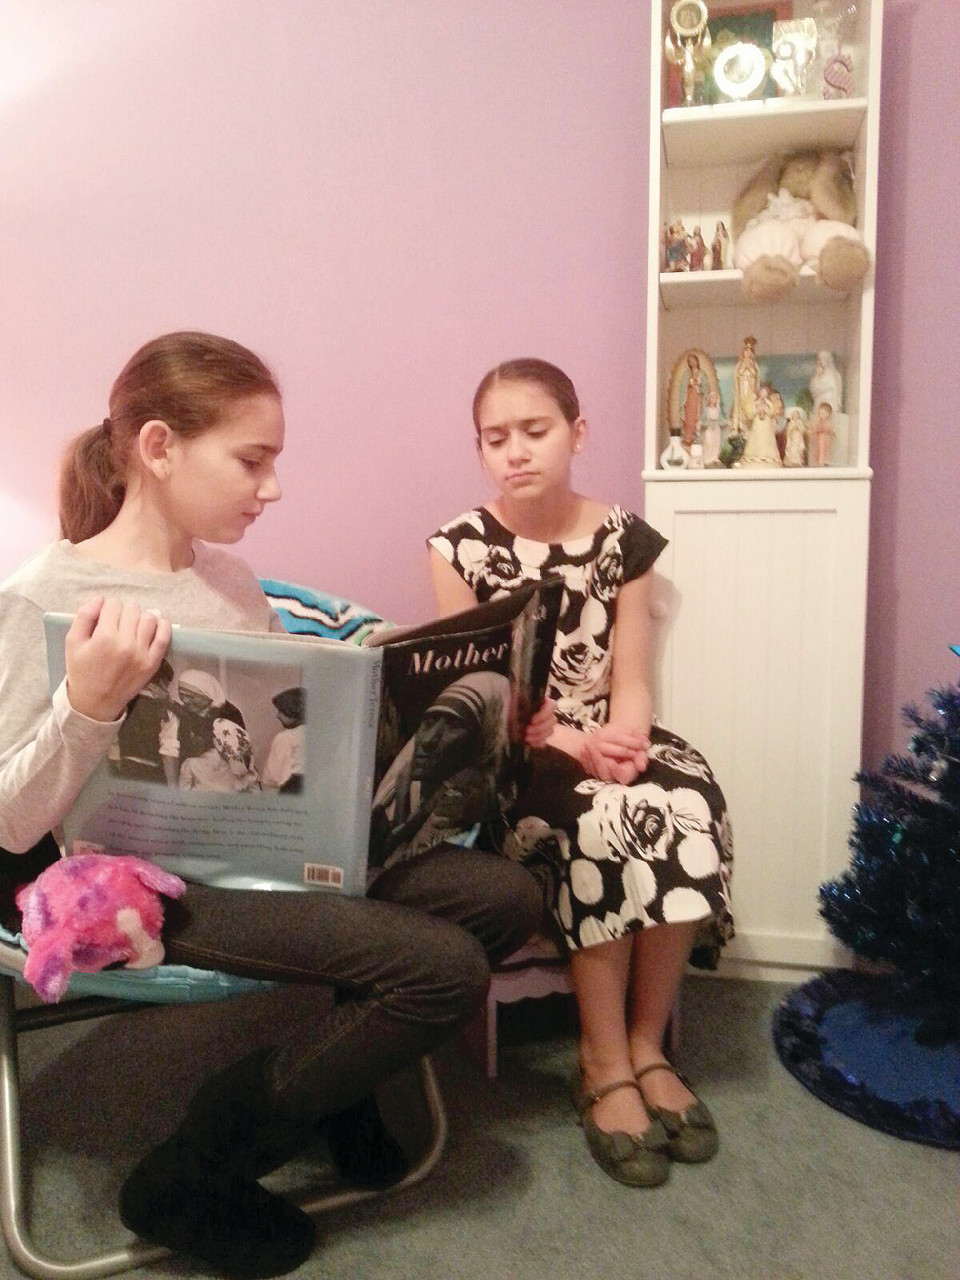 Sydney Khoury, now 13 and a seventh-grader at St. Philip School, reads one of her story books on the life of Mother Theresa with her younger sister Ava, 12, a student at St. Thomas.